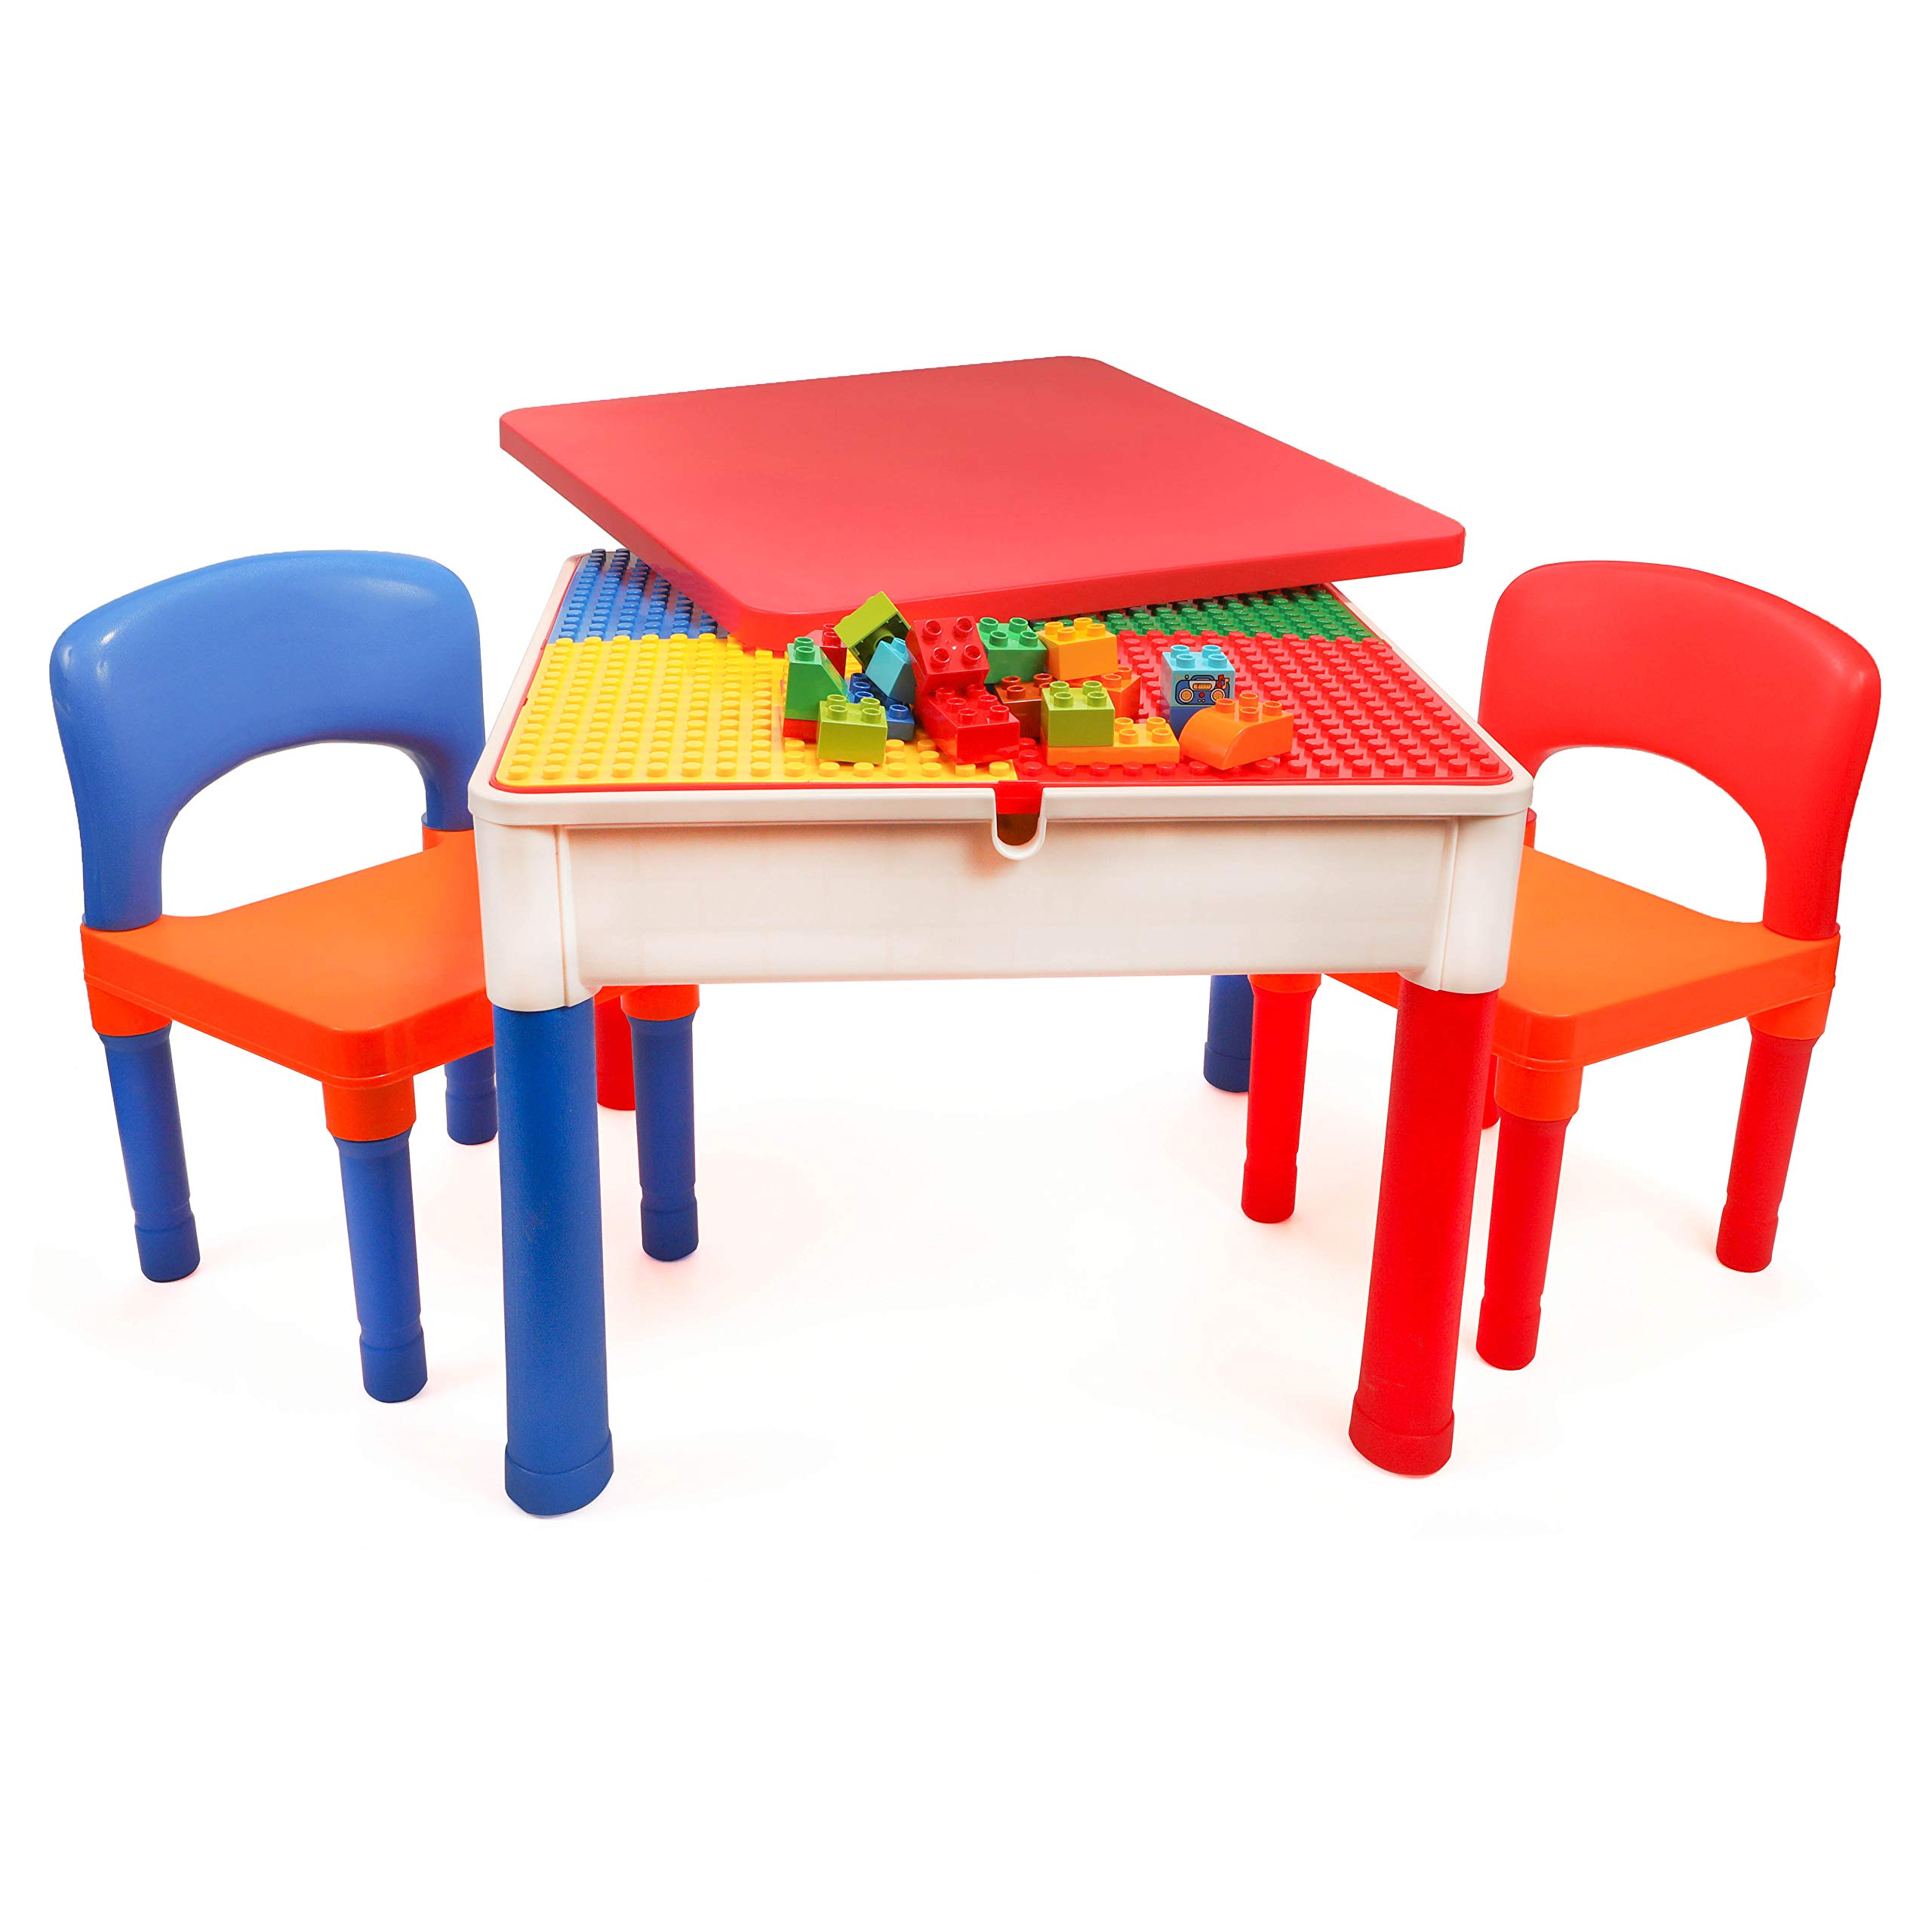 Smart Builder Toys 3 in 1 Major Brands Compatible Baseplate, Activity Table with Removable Cover and Large Storage Area with 2 Chairs Set, Can be Used for Large, and Small Building Bricks by Smart Builder Toys